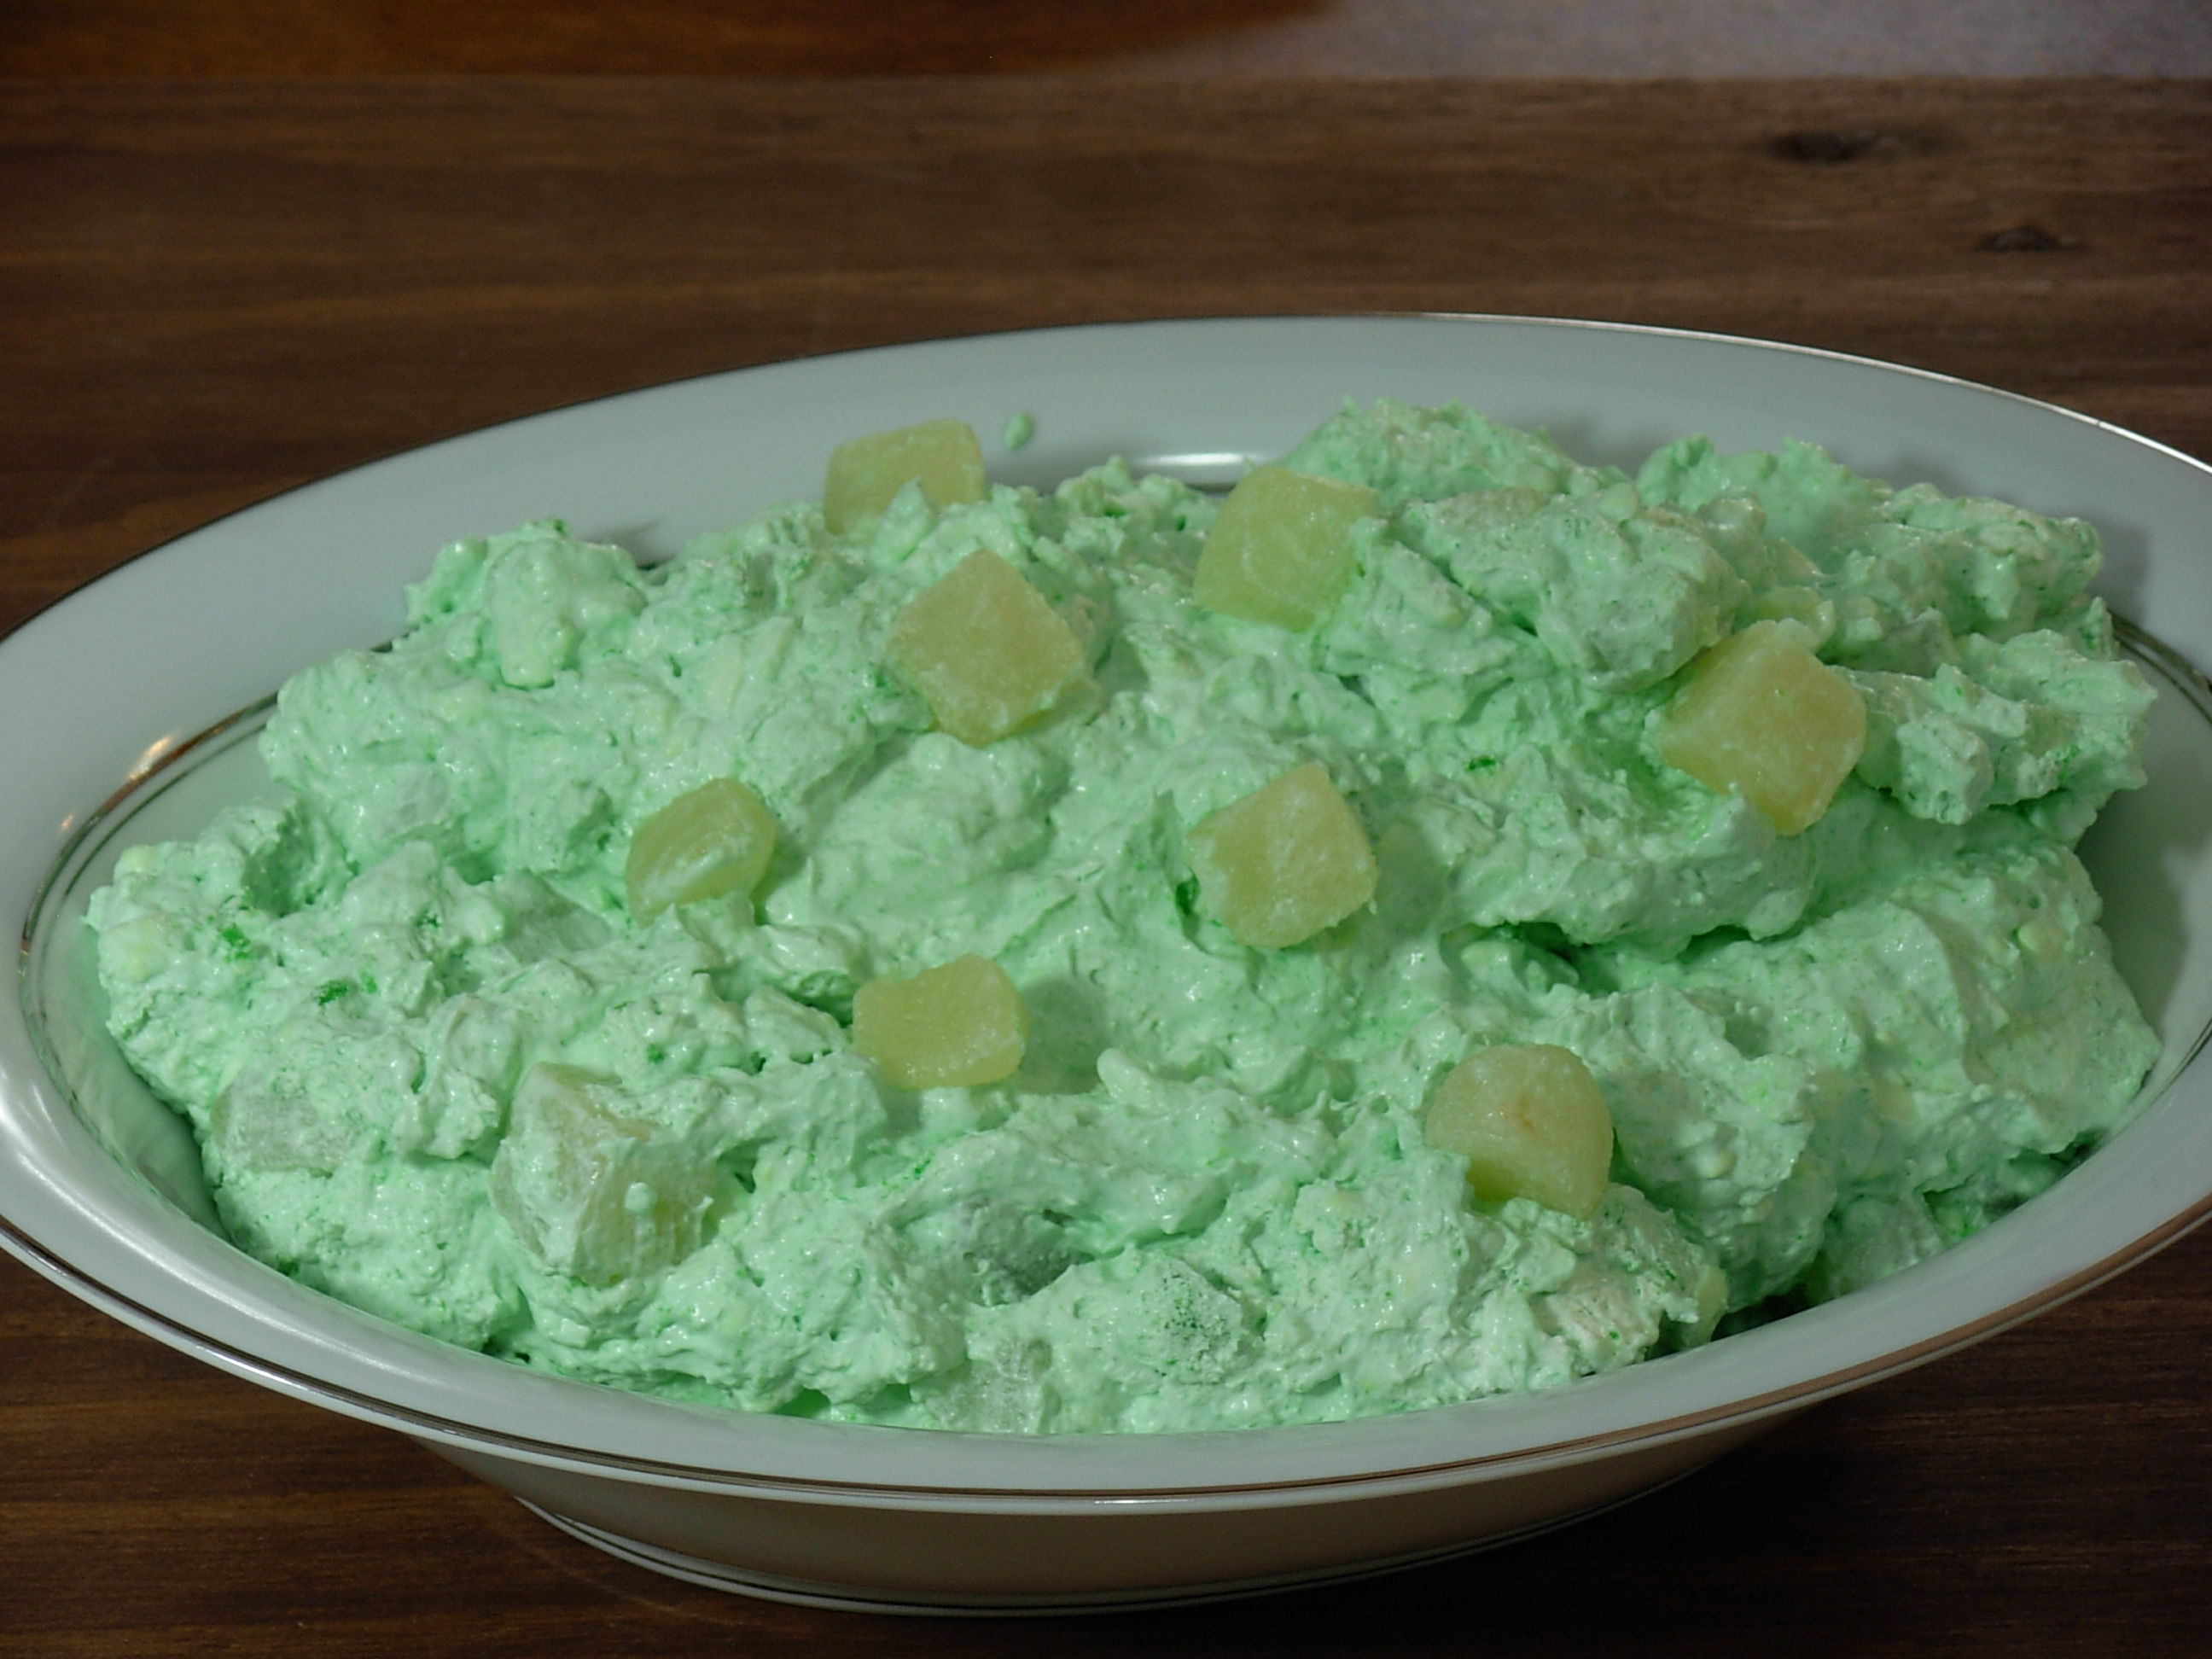 dump salad widower recipes rh widowerrecipes com jello cottage cheese salad recipe dry jello and cottage cheese salad